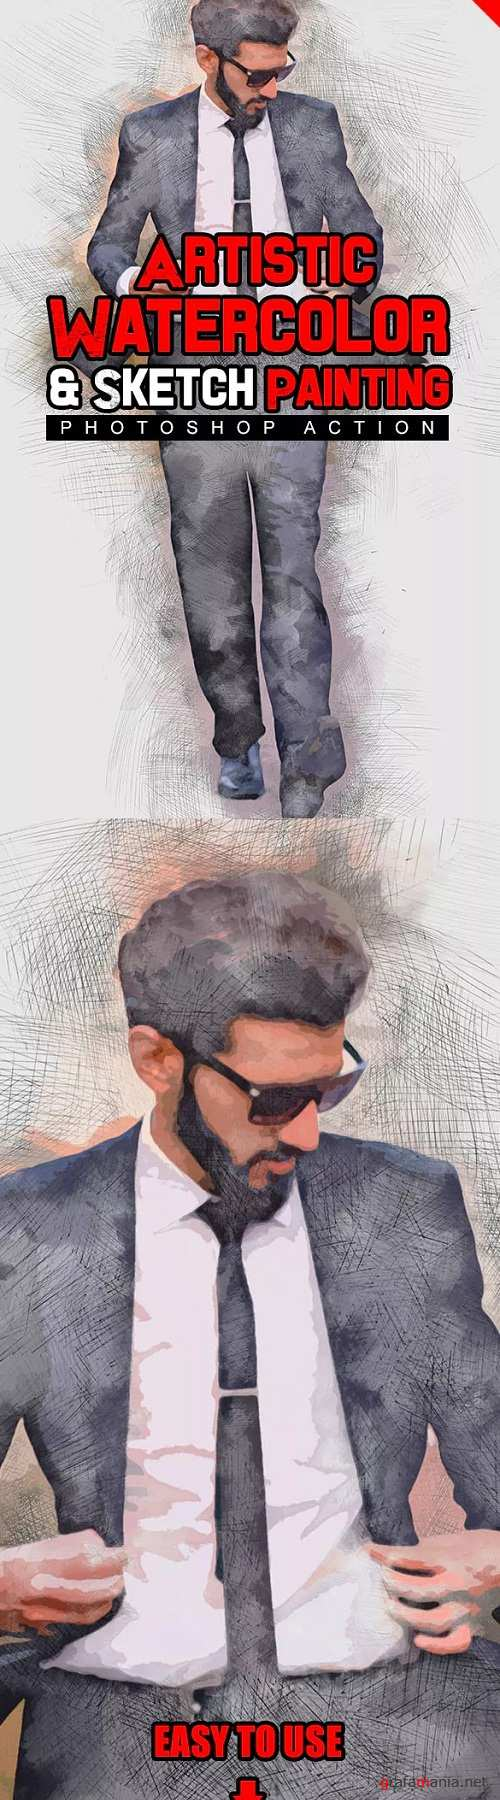 Artistic Watercolor & Sketch Painting Photoshop Action 23175935